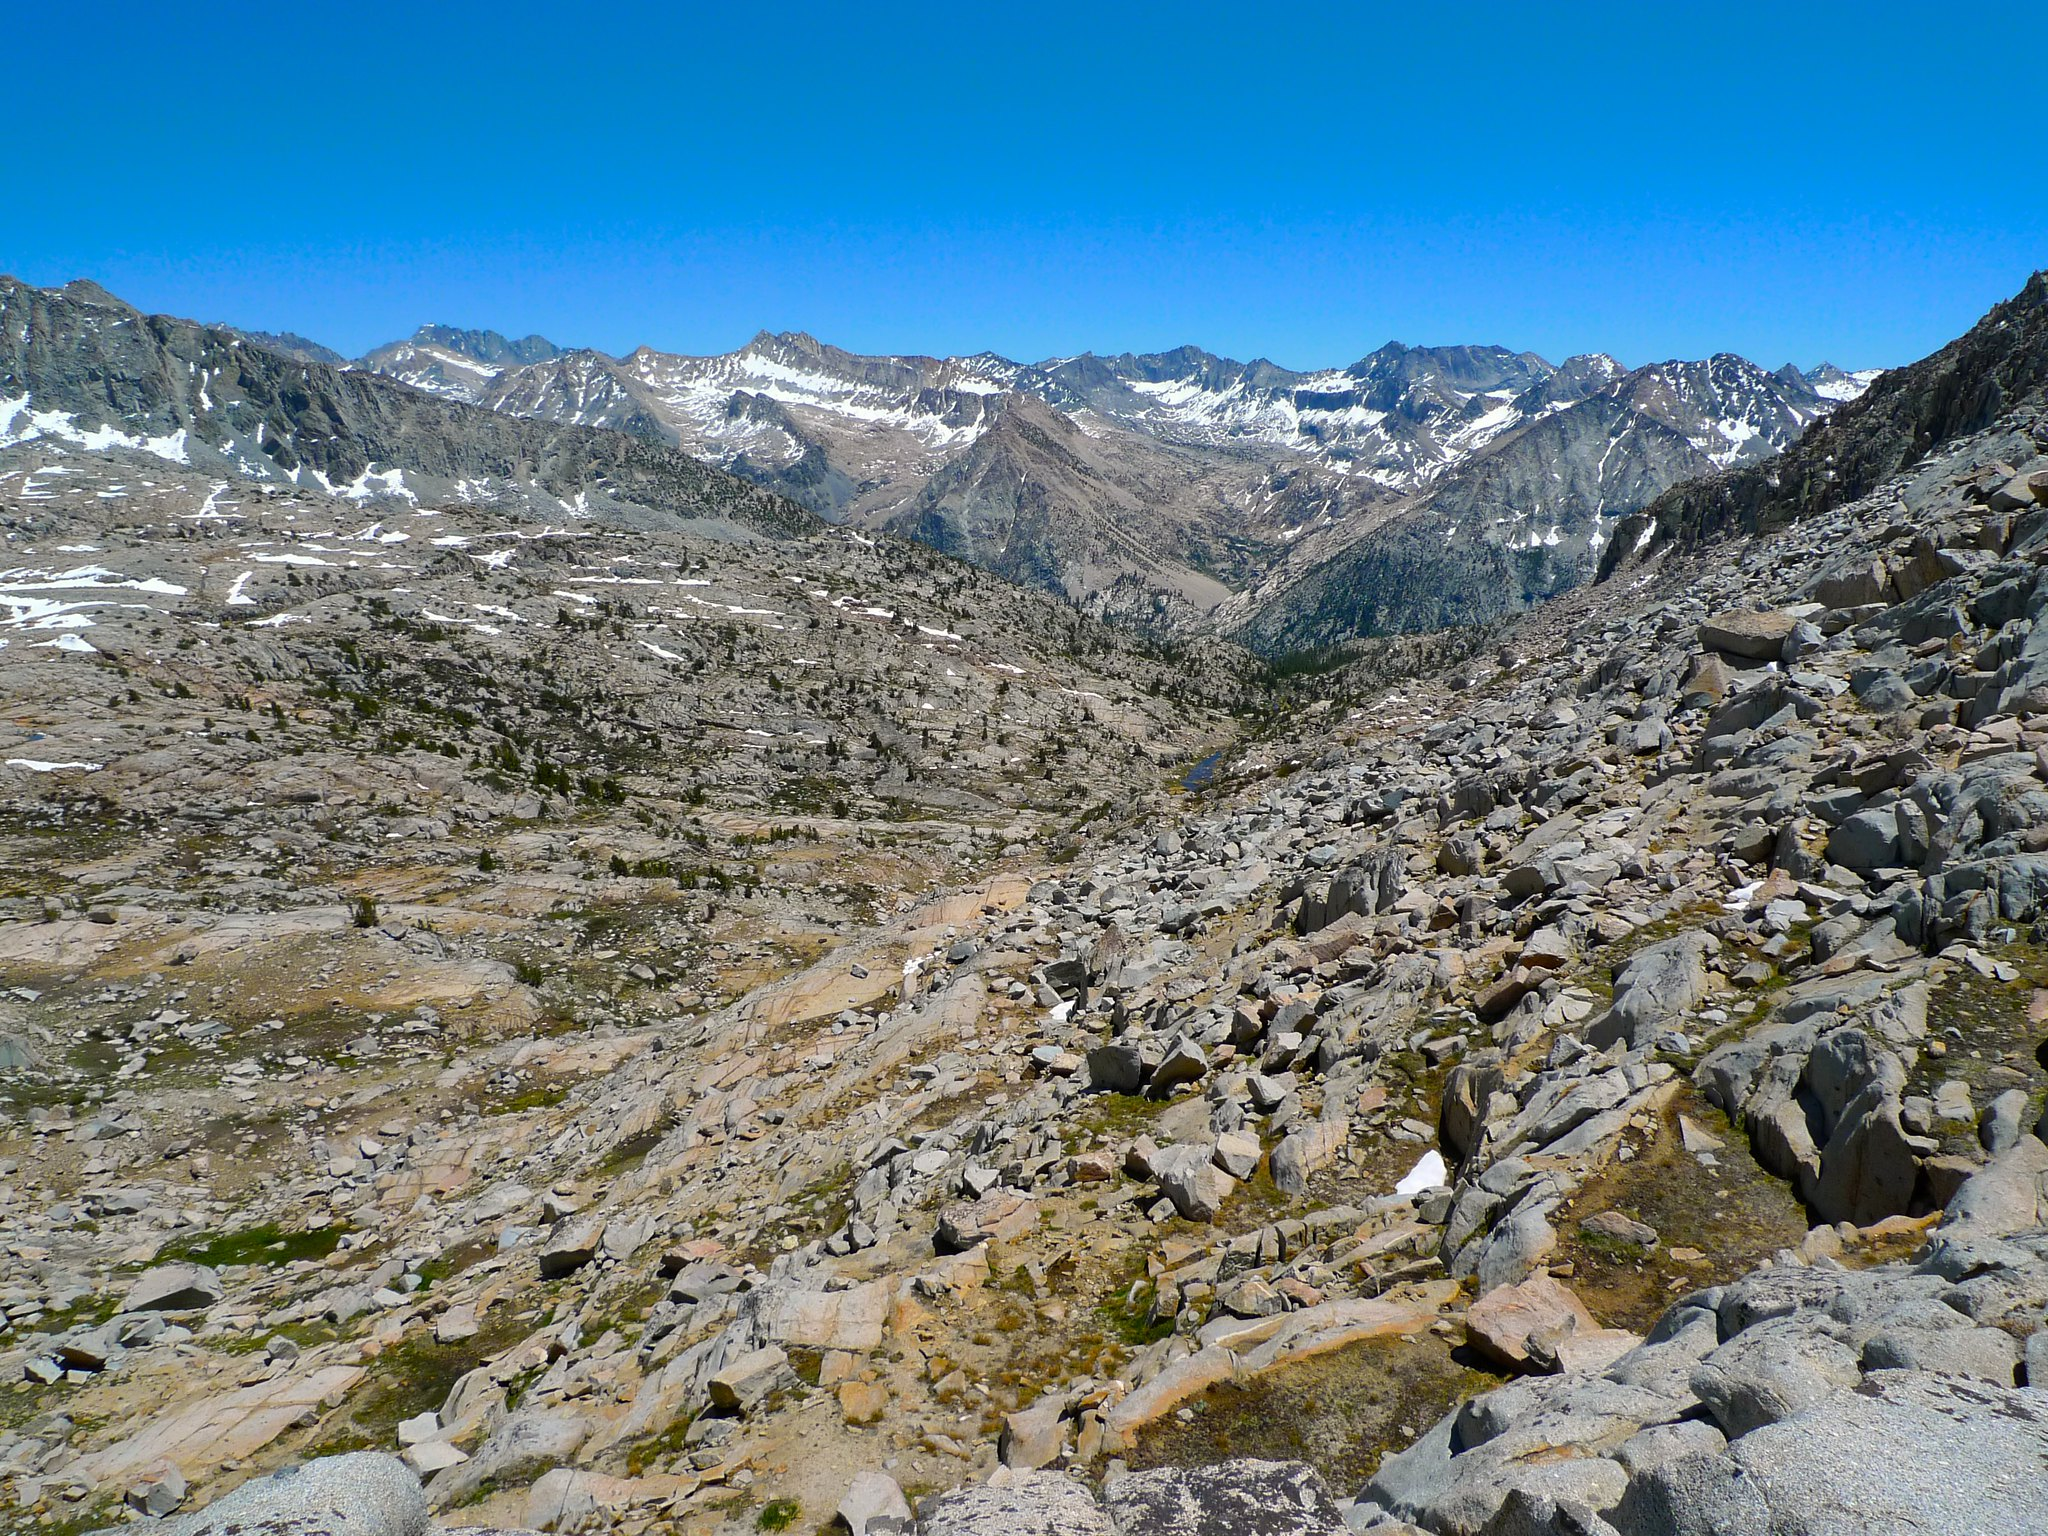 View of Palisade Basin from Knapsack Pass